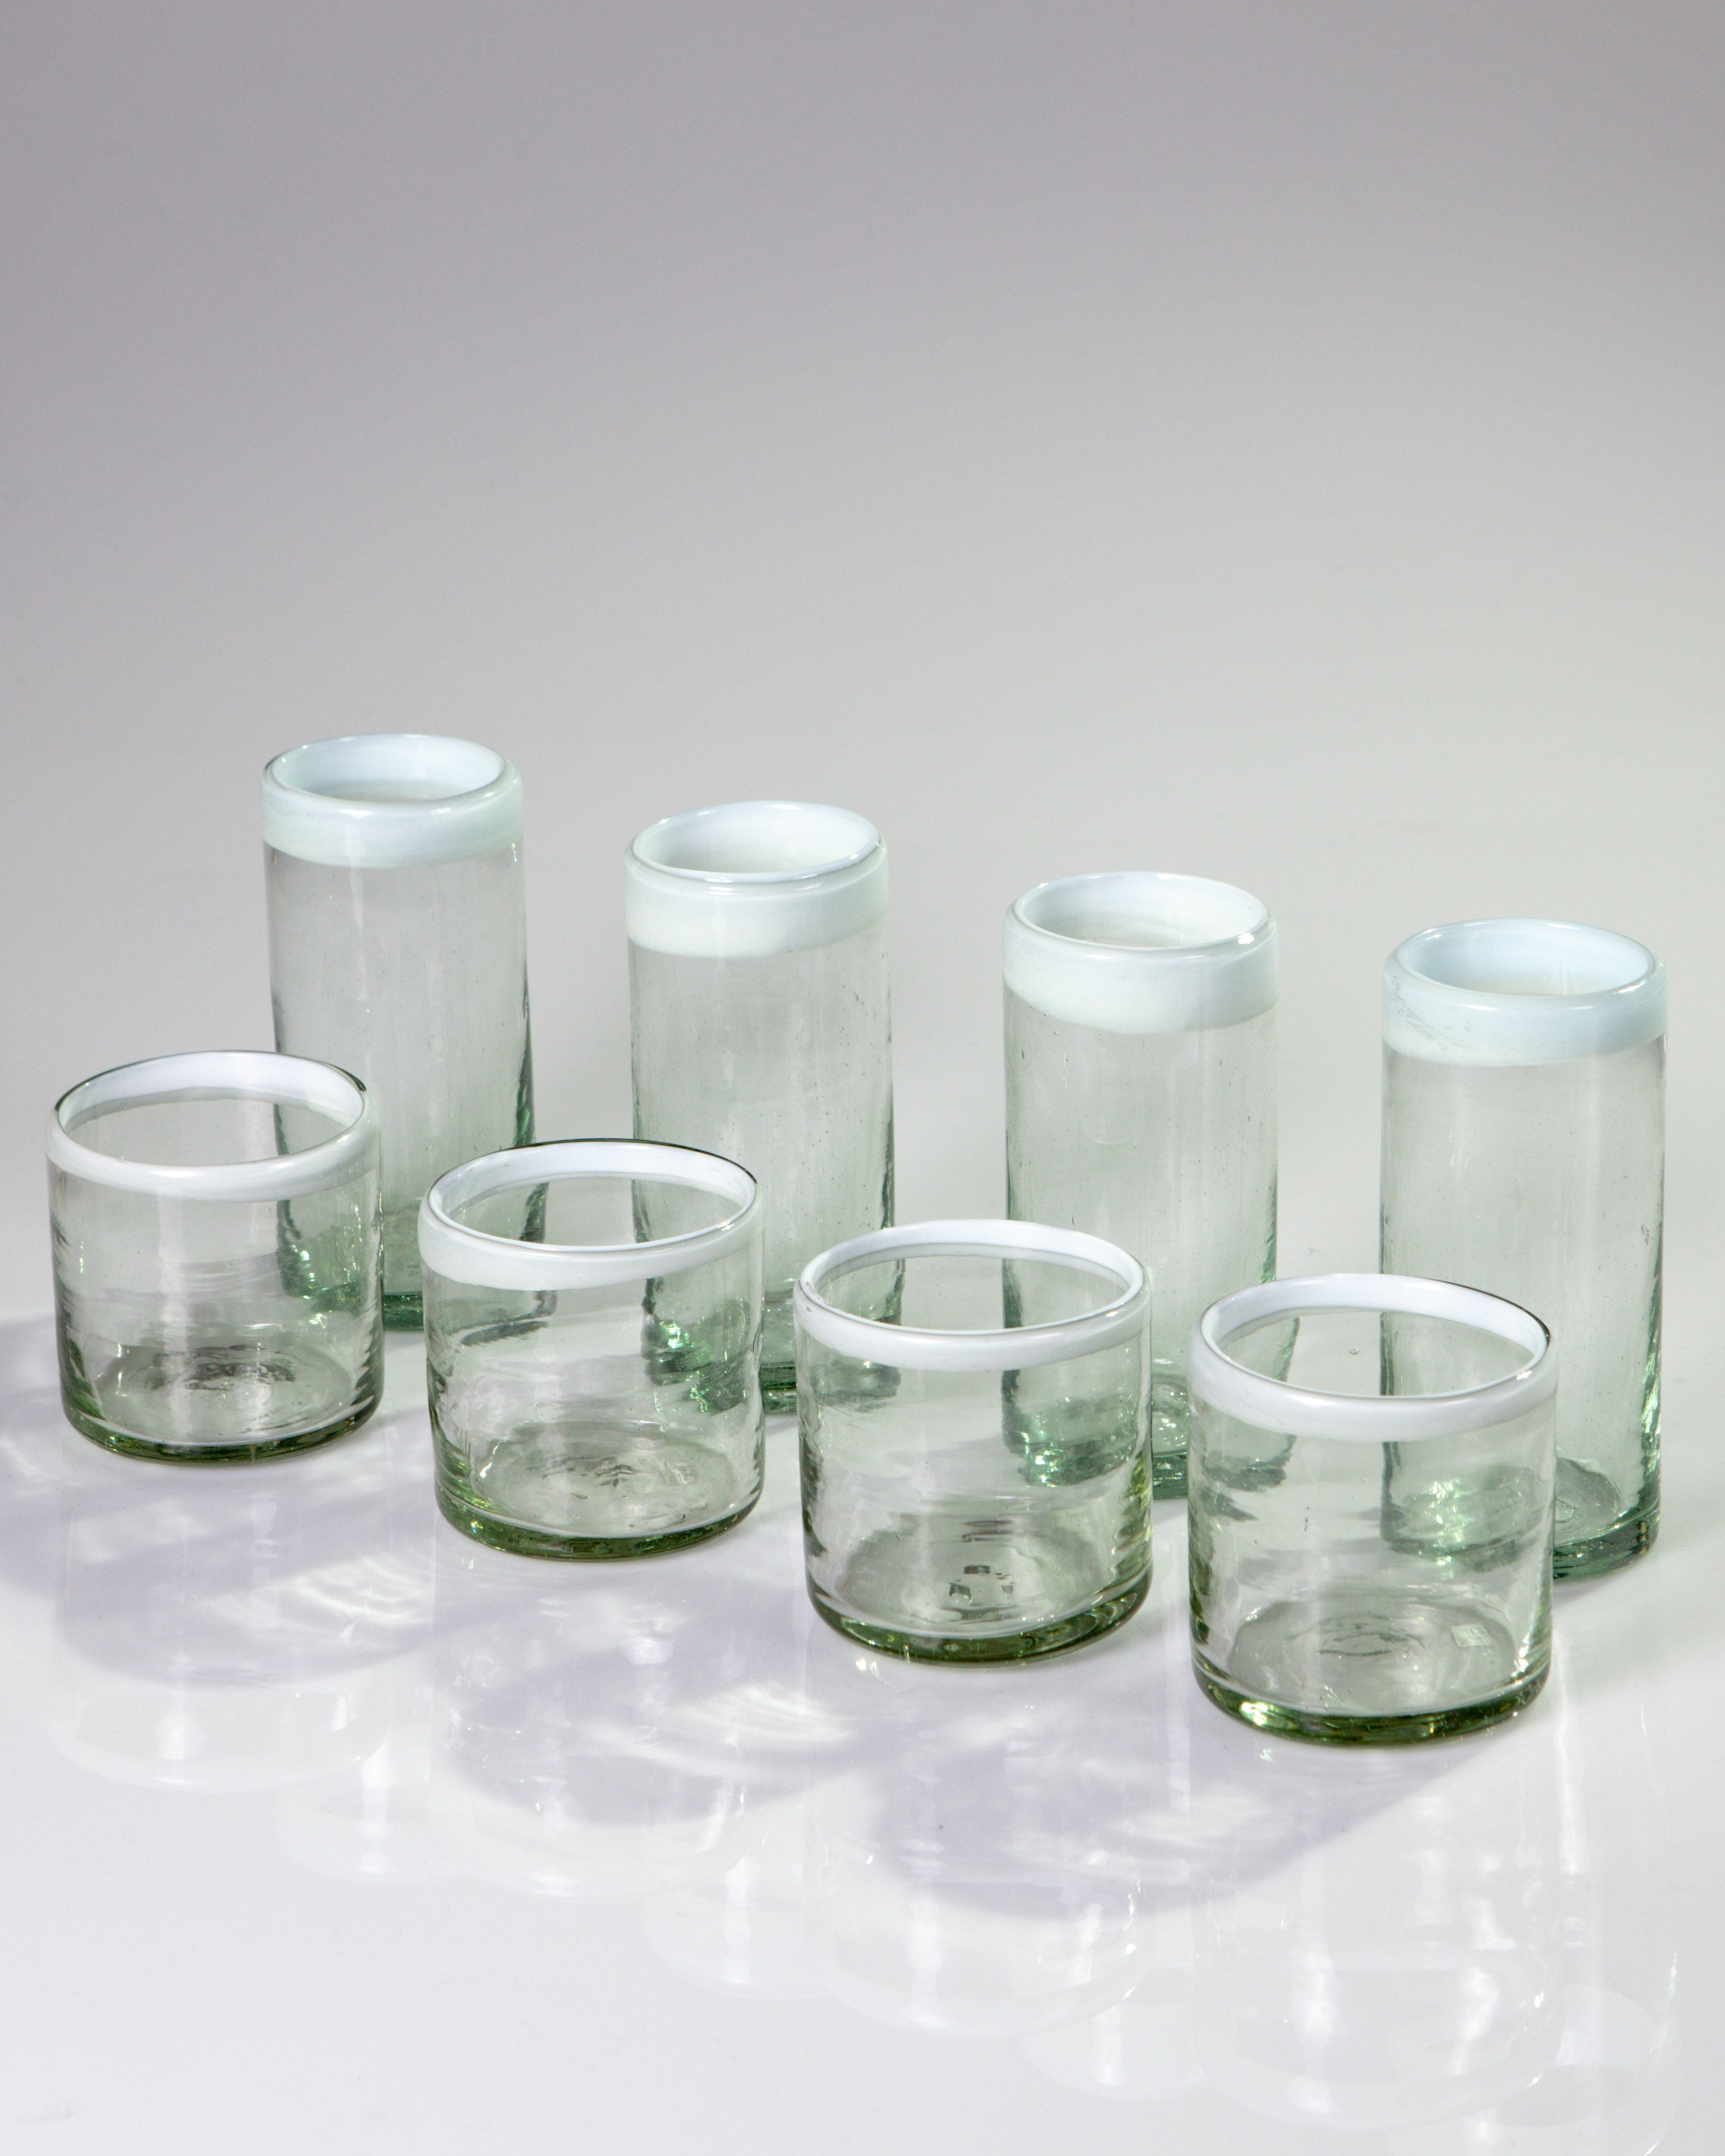 White Edge Blown Glass Tall Tumblers, set of 4